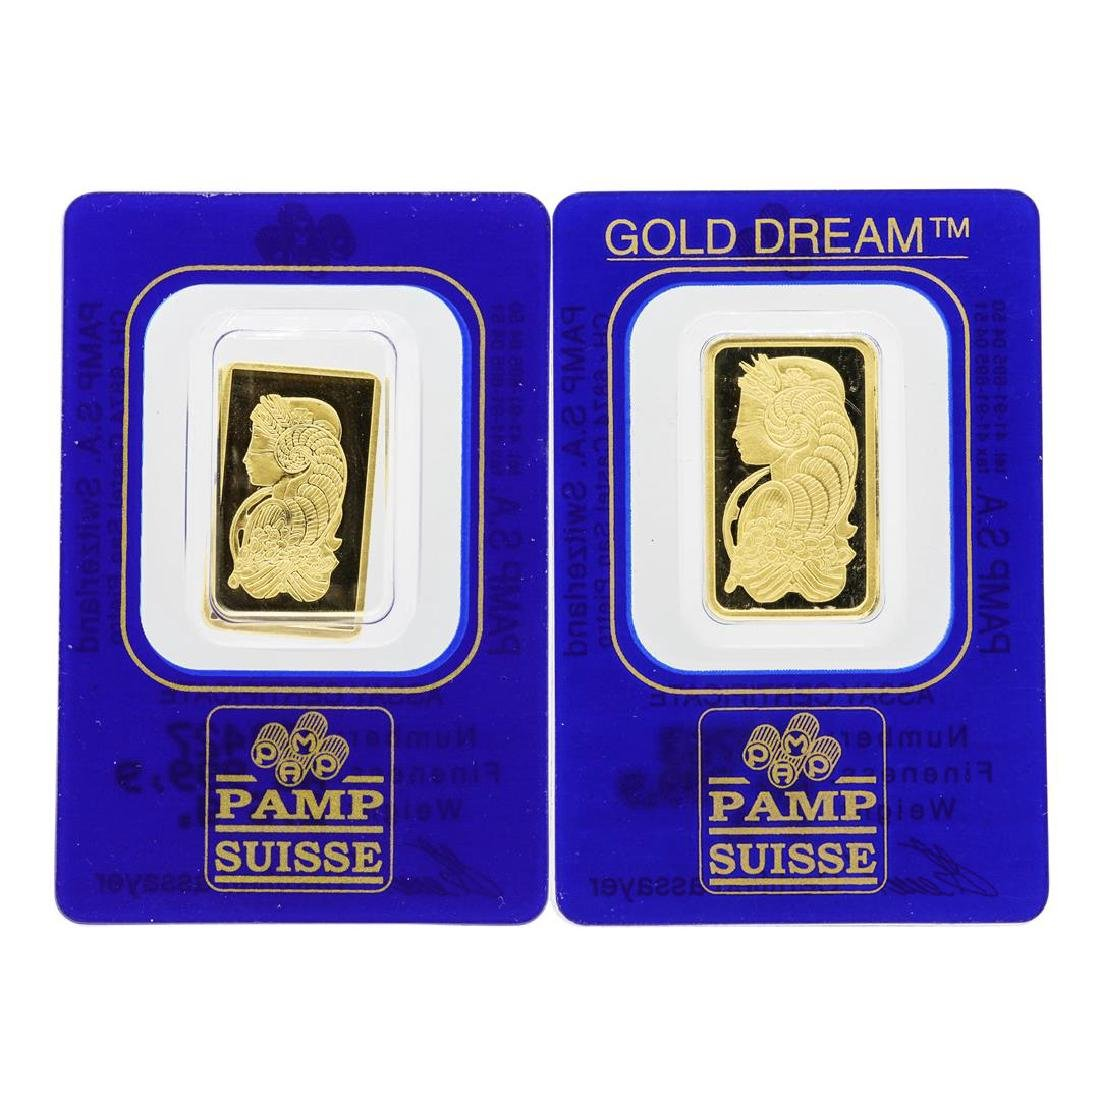 Lot of 2.5 & 5 gram PAMP Suisse .9999 Fine Gold Ingot